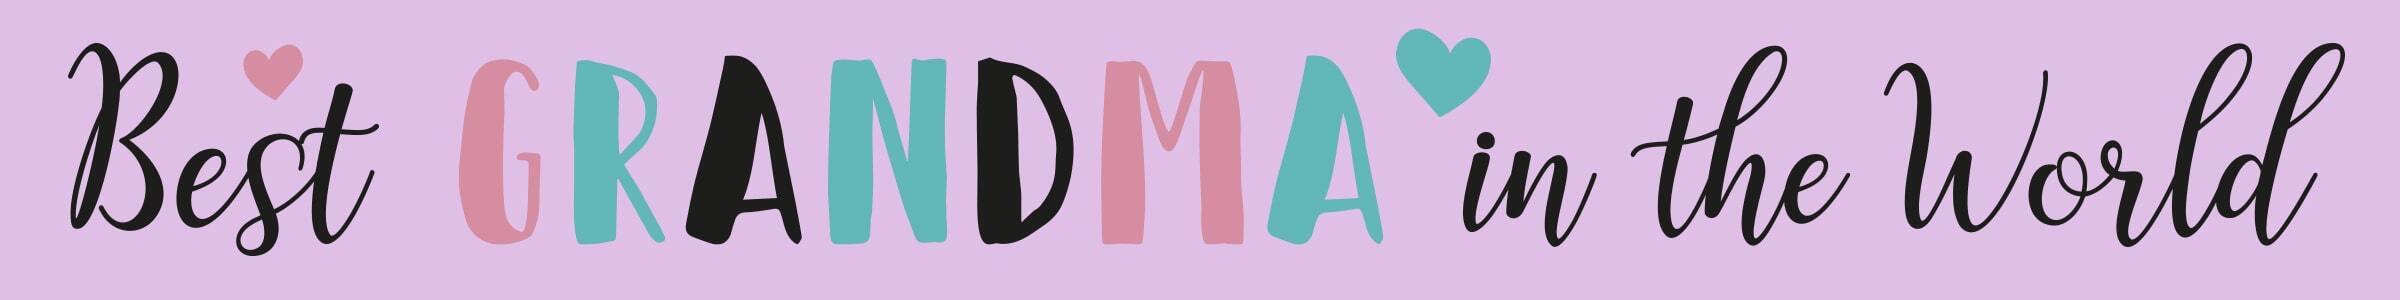 Category_Teaser_Header_Mama_Geschenke_Oma_UK_EU_2400x300